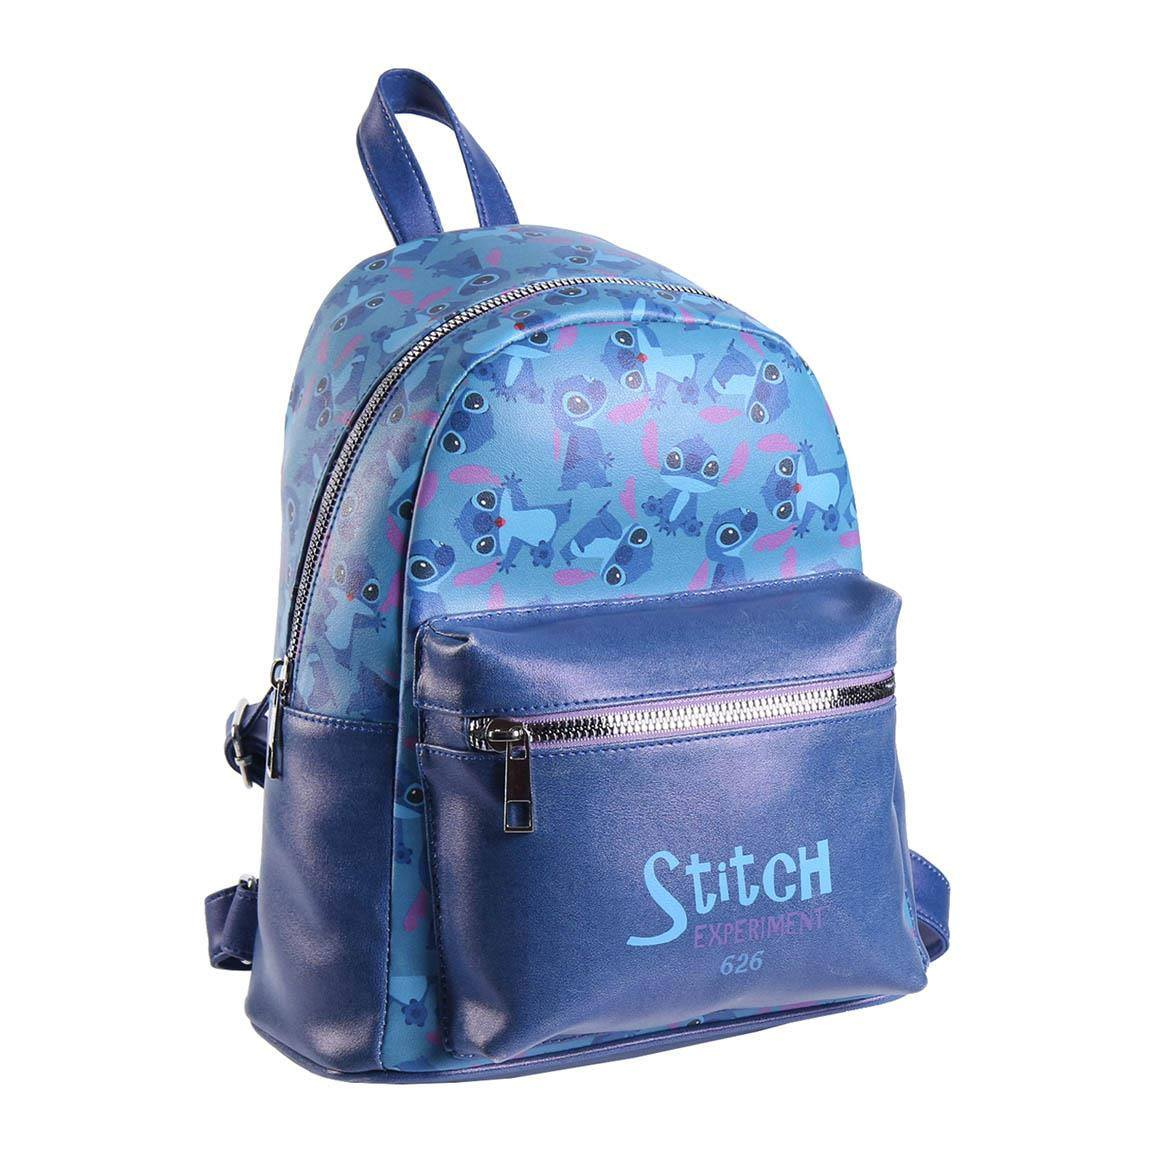 Lilo & Stitch Faux Leather Backpack Experiment 626